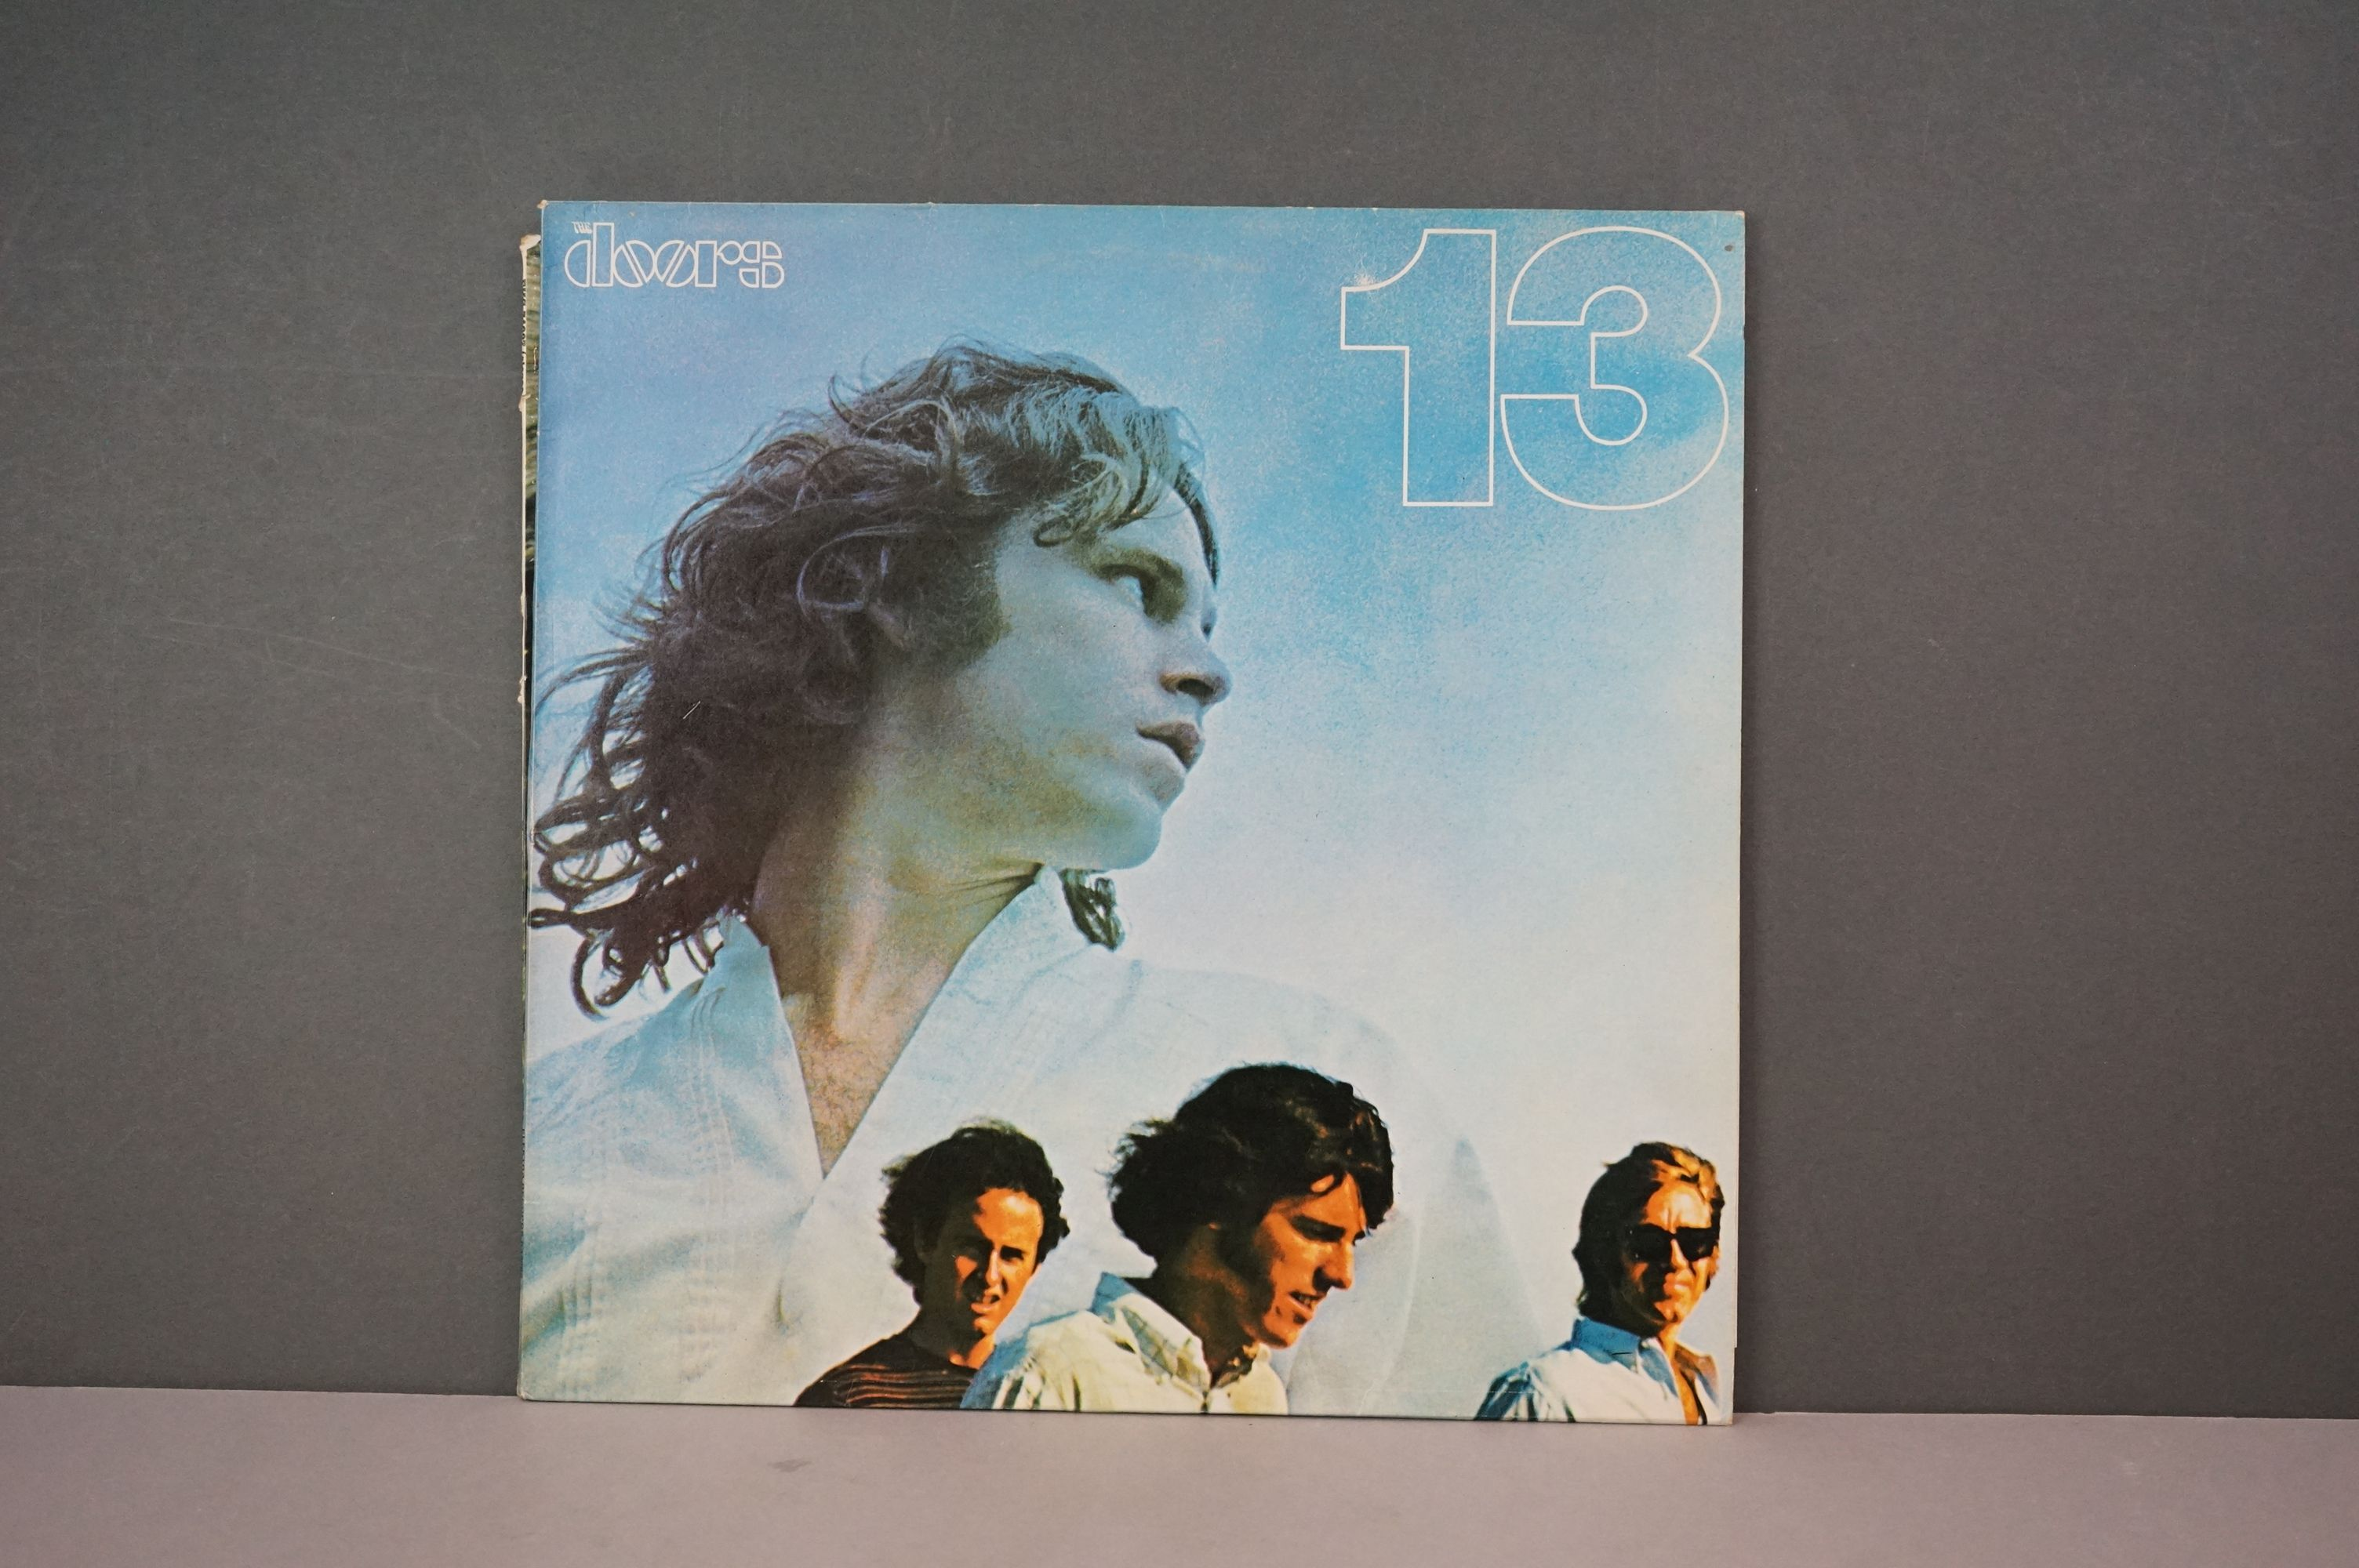 Vinyl - Sixteen The Doors vinyl LP's to include Waiting For The Sun (Elektra Records EKS 74024), The - Image 16 of 17